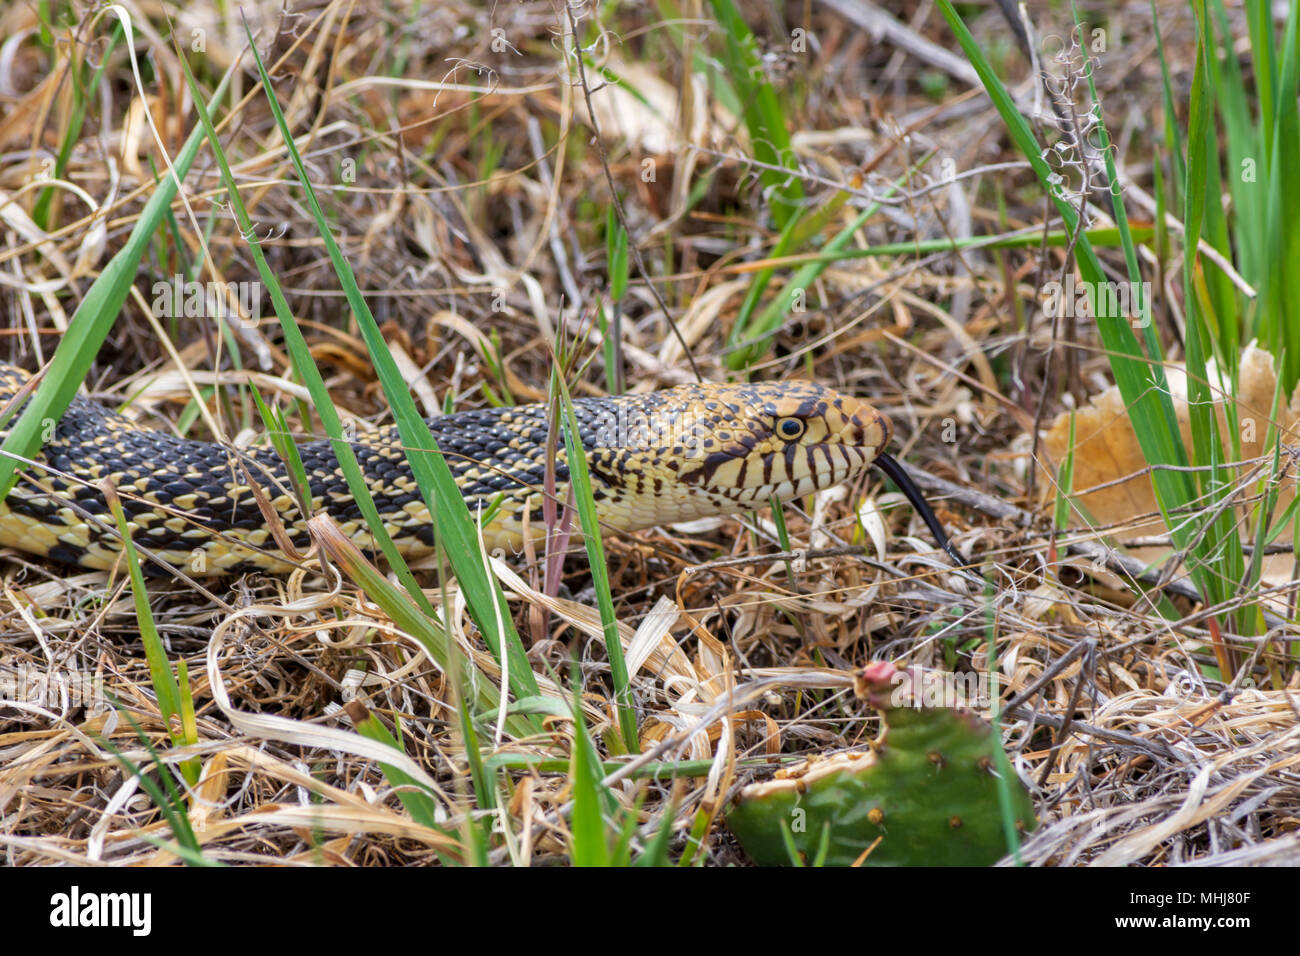 Gopher Snake in early spring, Castle Rock Colorado US - Stock Image